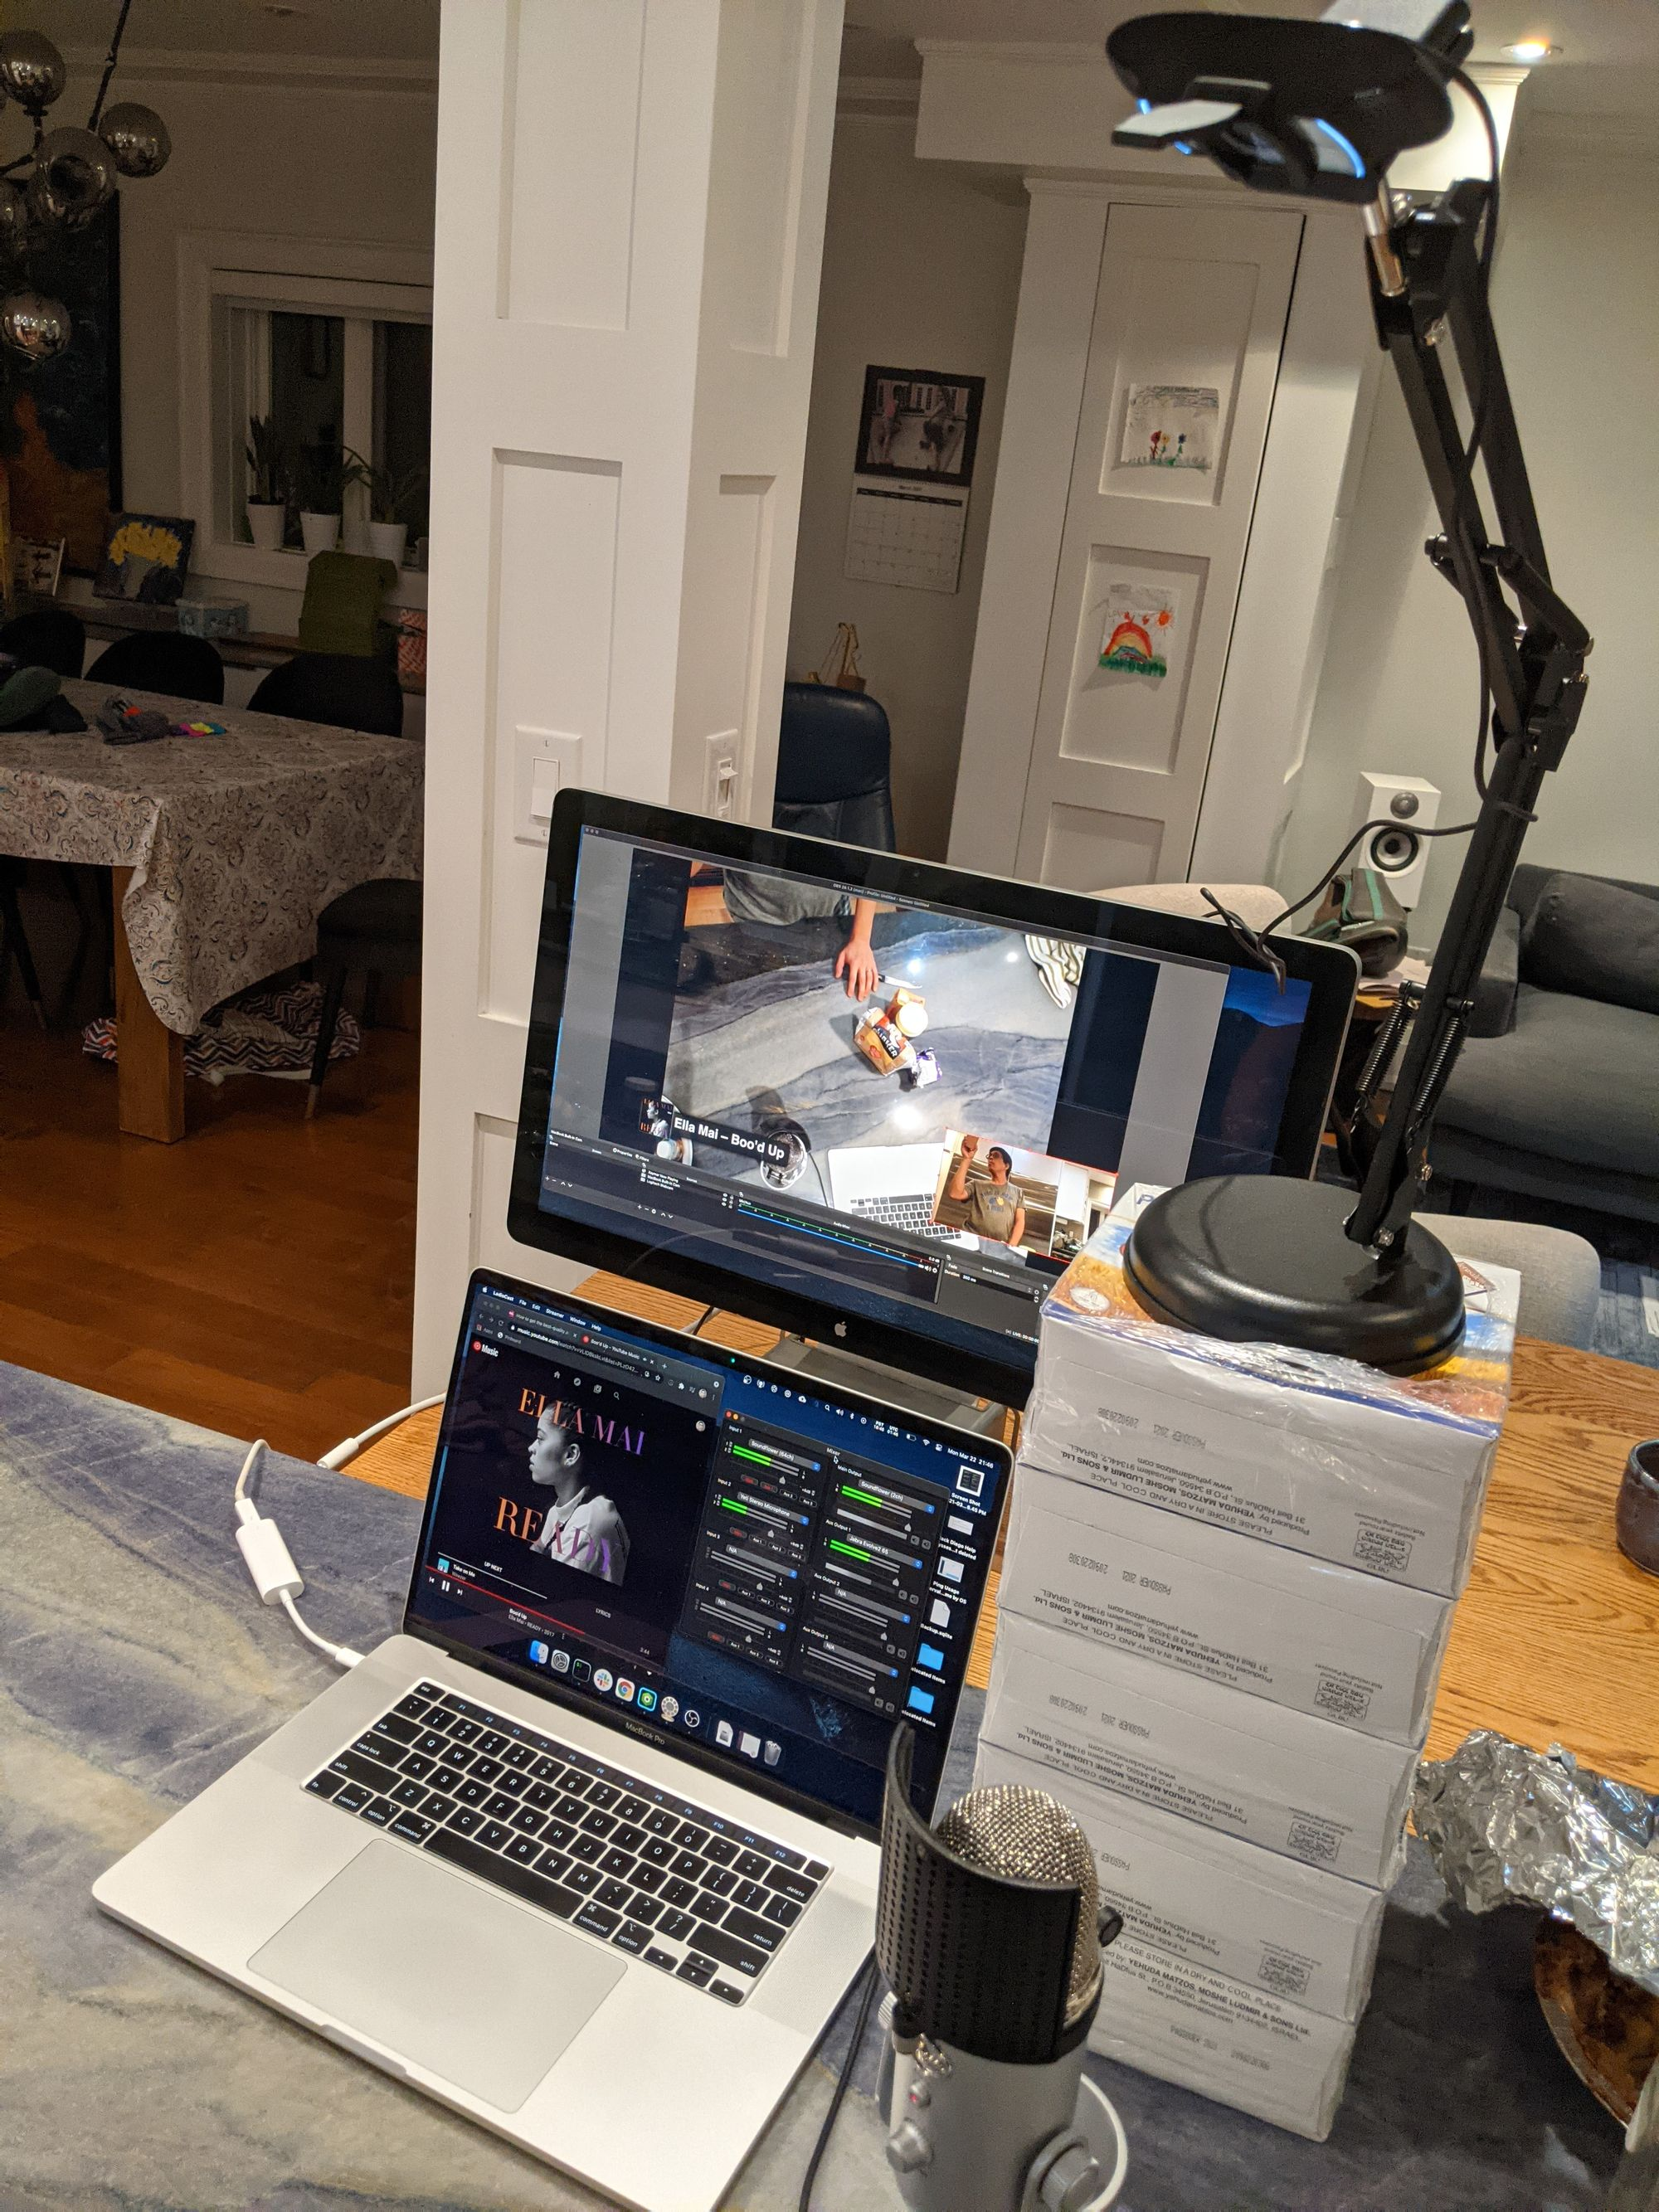 My kitchen island setup: laptop, external monitor, microphone, webcam on a stack of boxes